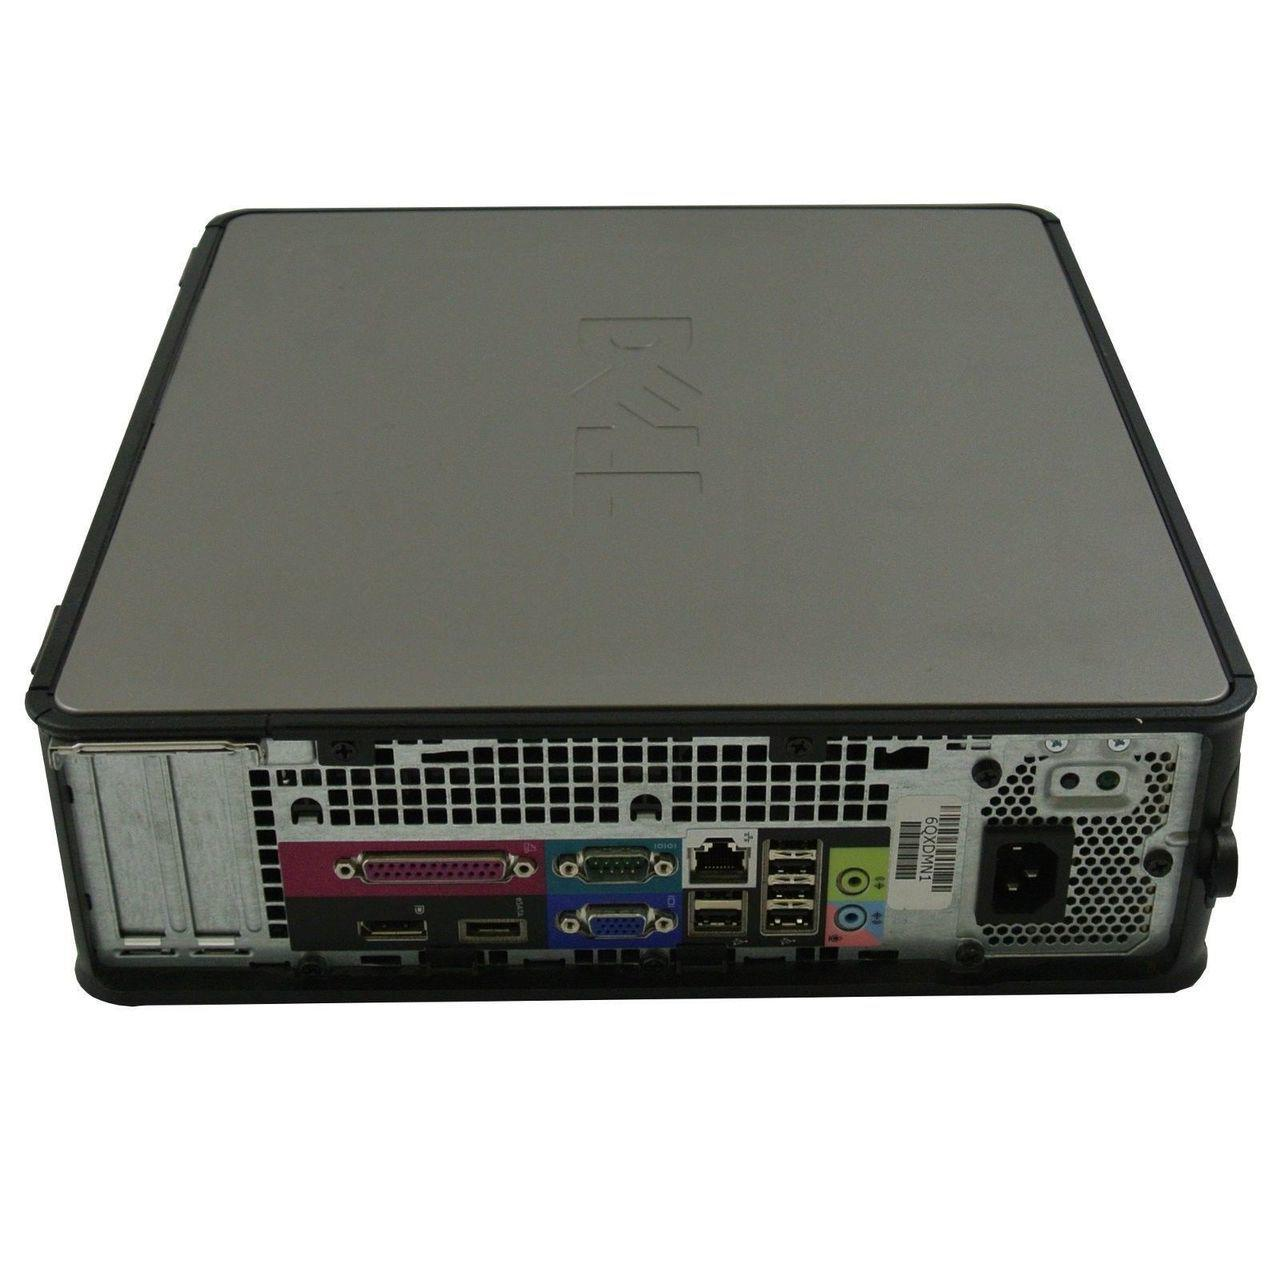 Dell OptiPlex 780 DT Core 2 Duo 3 GHz - HDD 160 Go RAM 4 Go